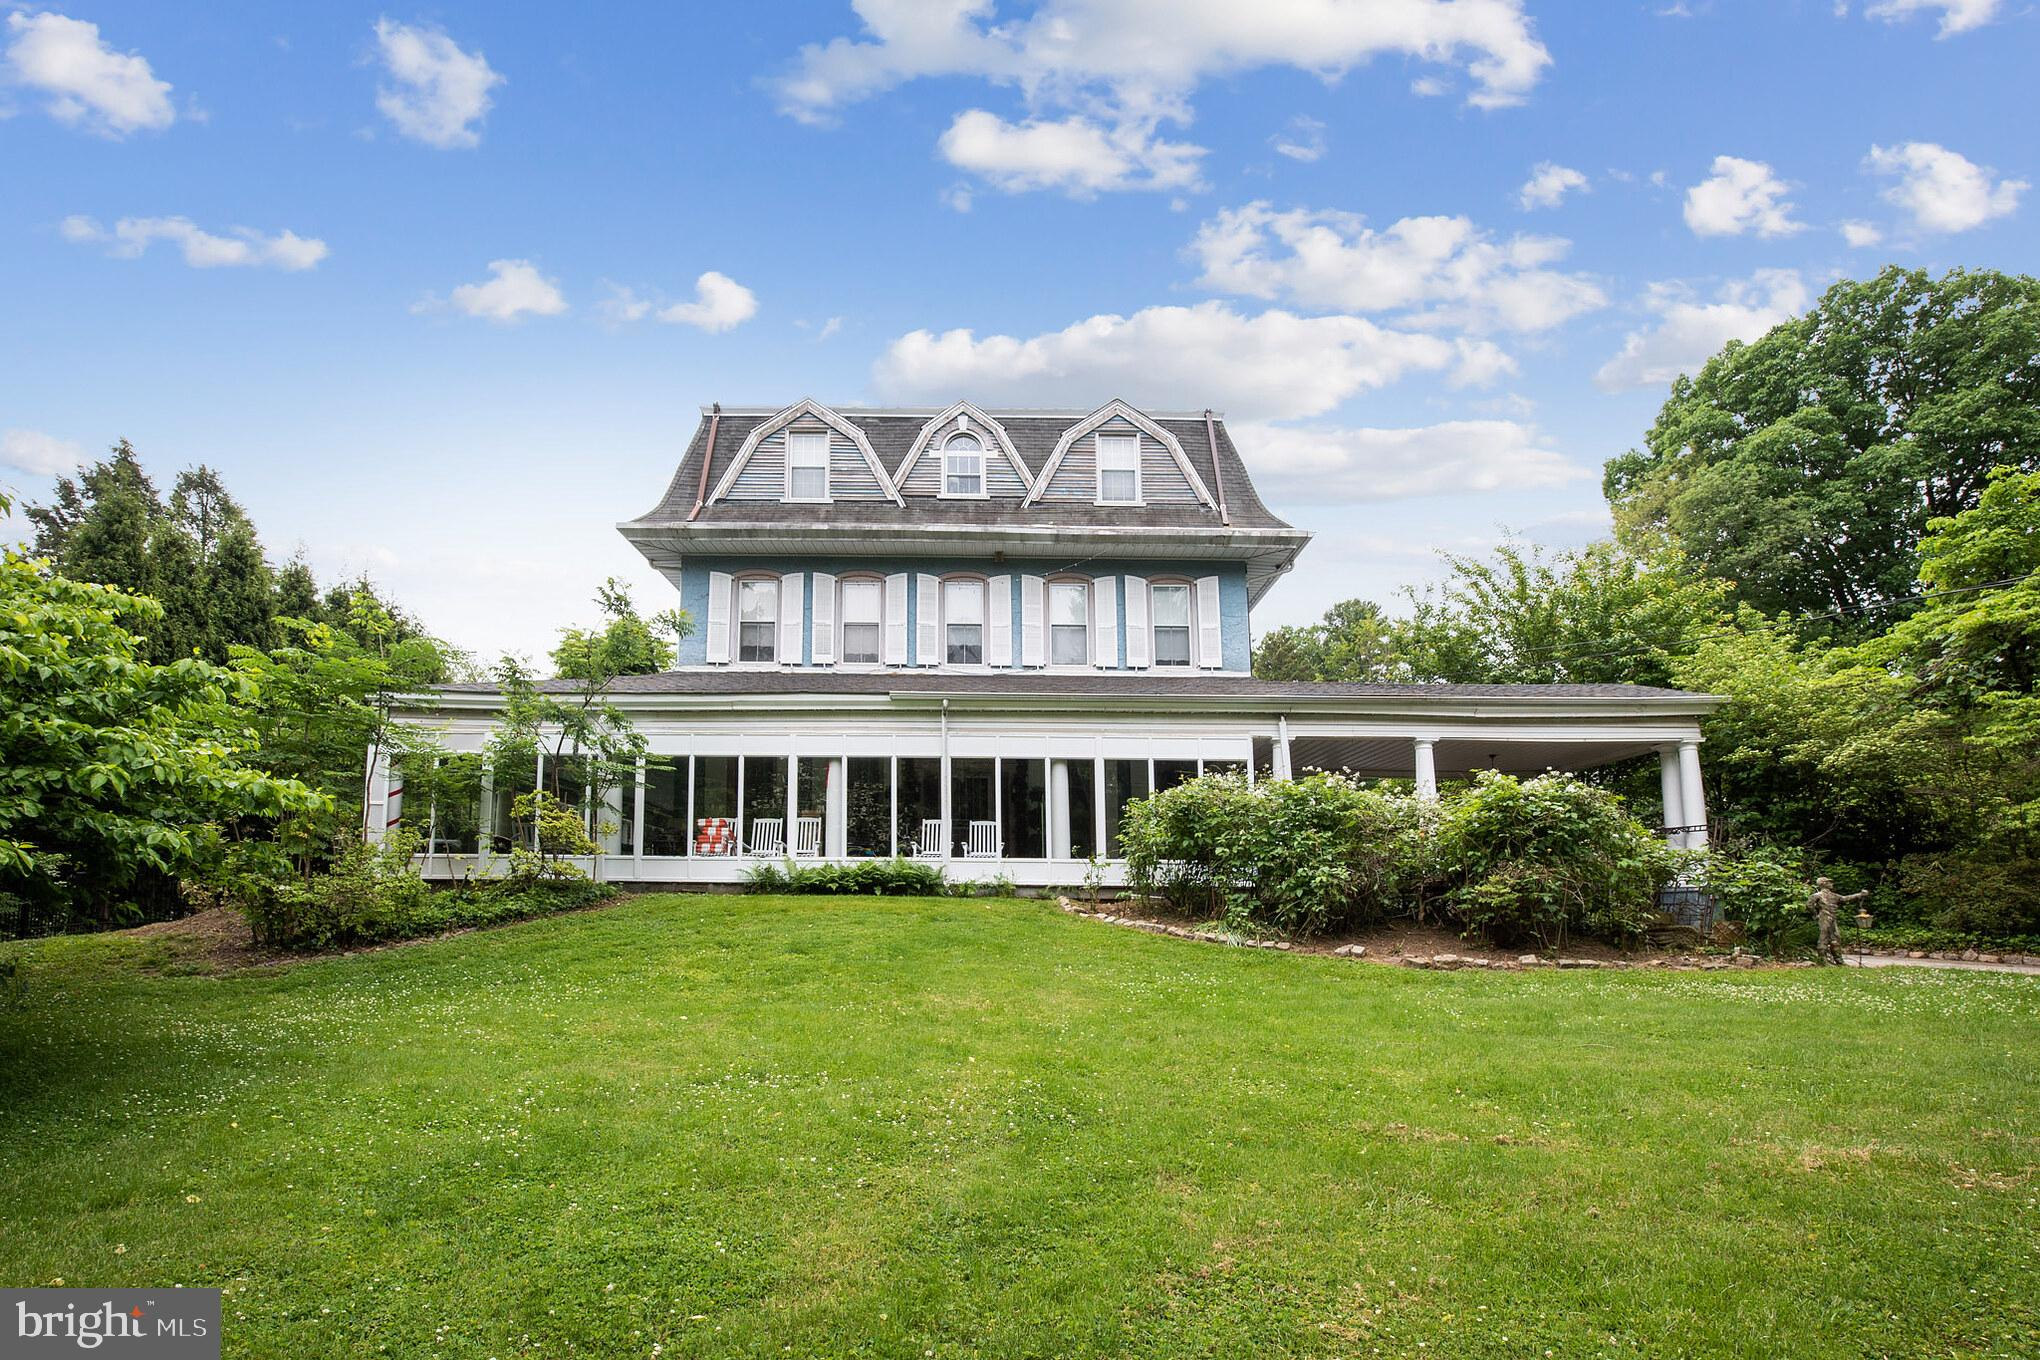 Incredible opportunity to purchase a piece of Main Line History! Offered for the first time in over 60 years, this stunning estate was built in approx. 1878 for Silas Jones, who resided on the original 90 acre parcel owned by his grandfather Jonathan Jones, who was granted the land from William Penn. The house, constructed of stone, is of Victorian style, with typical architectural elements such as a Mansard roof with dormers, a large wrap around porch and projecting bay windows. A gabled porte cochere welcomed horse drawn carriages when built, and now serves as a circular driveway for modern use. Exquisite features include 10 ft ceilings on the main and second levels, original leaded glass details on some windows, grand entertaining spaces and a dramatic wrap-around front porch overlooking the private grounds. This five bedroom, four full and two half bath home has been meticulously maintained and expanded through the years for modern living. This property is registered as a Class II Historic property with Lower Merion Township. Beautiful original chestnut wide plank floors greet you in the center hall foyer and run throughout most of the main level. To your right sits the study complete with floor to ceiling windows, custom-built mahogany shelving and matching crown and baseboard moldings. The formal dining room sits opposite the study with white painted moldings, floor to ceiling windows with built-in benches, and a cozy wood-burning fireplace at the center. A butler's pantry connects the dining room to the living room, providing an extra serving area for entertaining. The spacious living room features beautiful leaded glass paneled windows, built-in window seating and a wood-burning fireplace tucked away under a graceful archway in the center of the room. The gourmet kitchen was renovated and expanded in approx. 2003 and is the showpiece of the home. A nineteen foot long island runs the length of the kitchen and provides an abundance of storage along with hostin